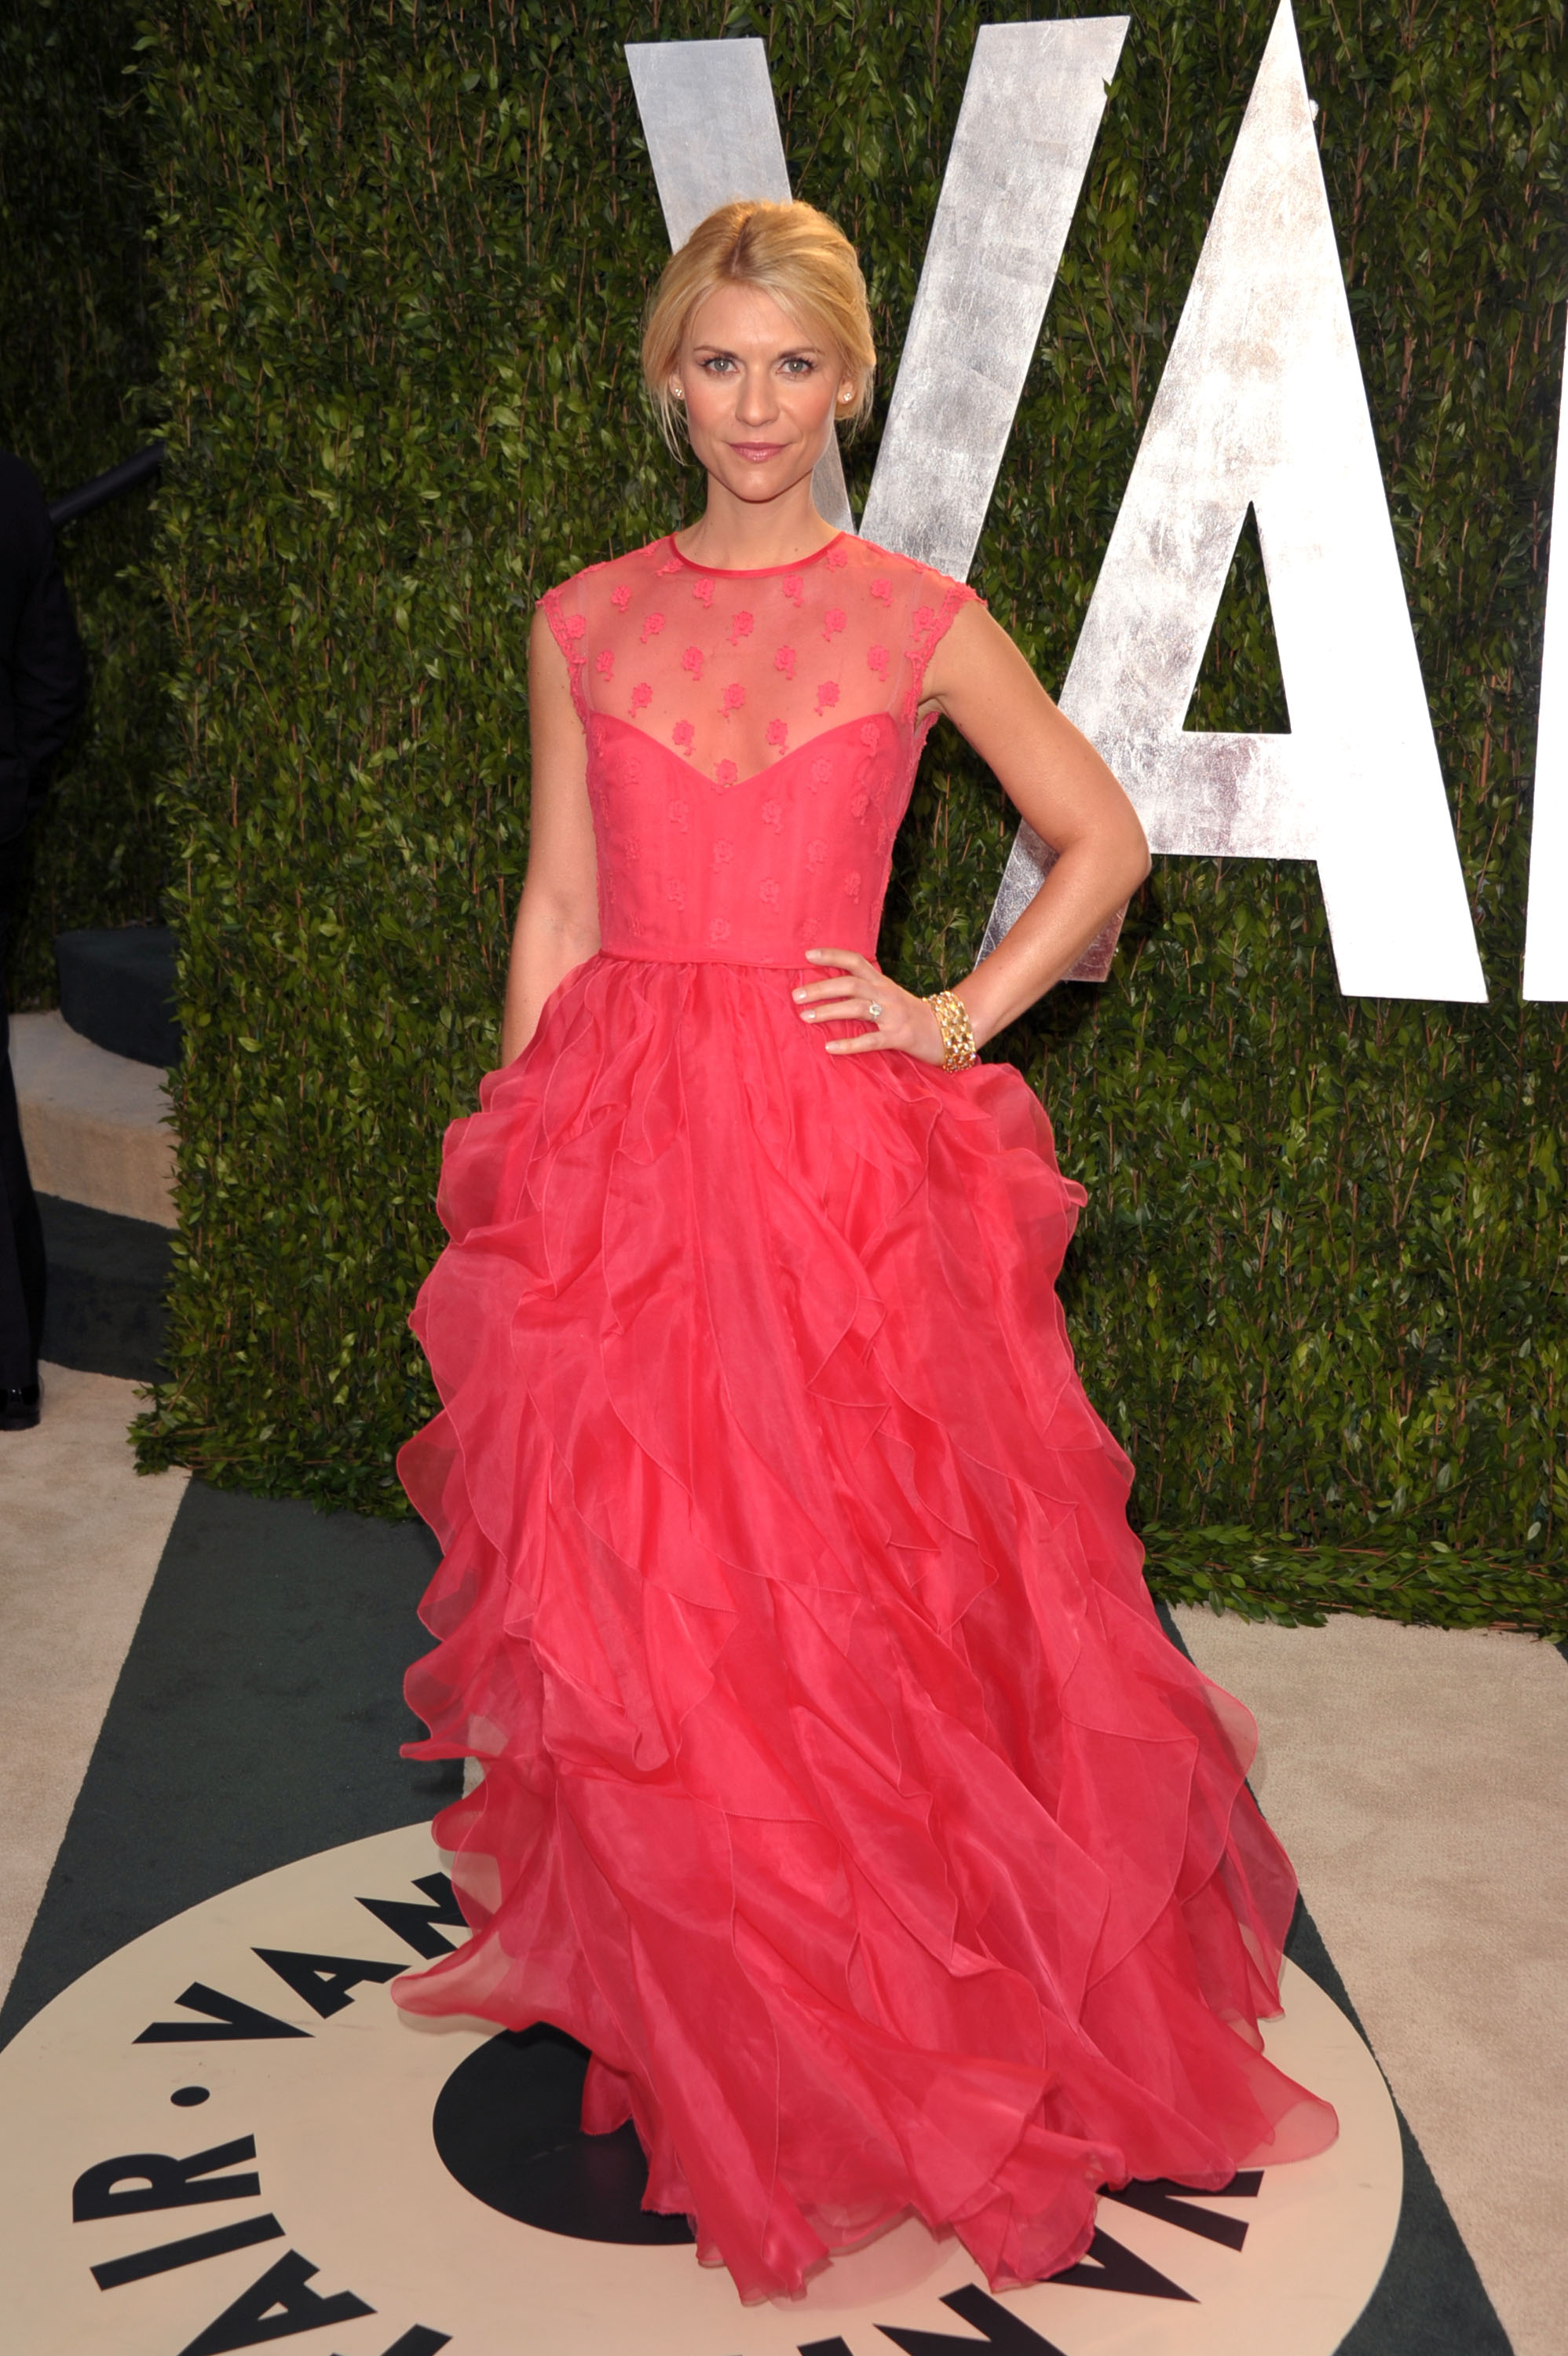 Claire Danes arrives at the Vanity Fair party wearing a Valentino gown.